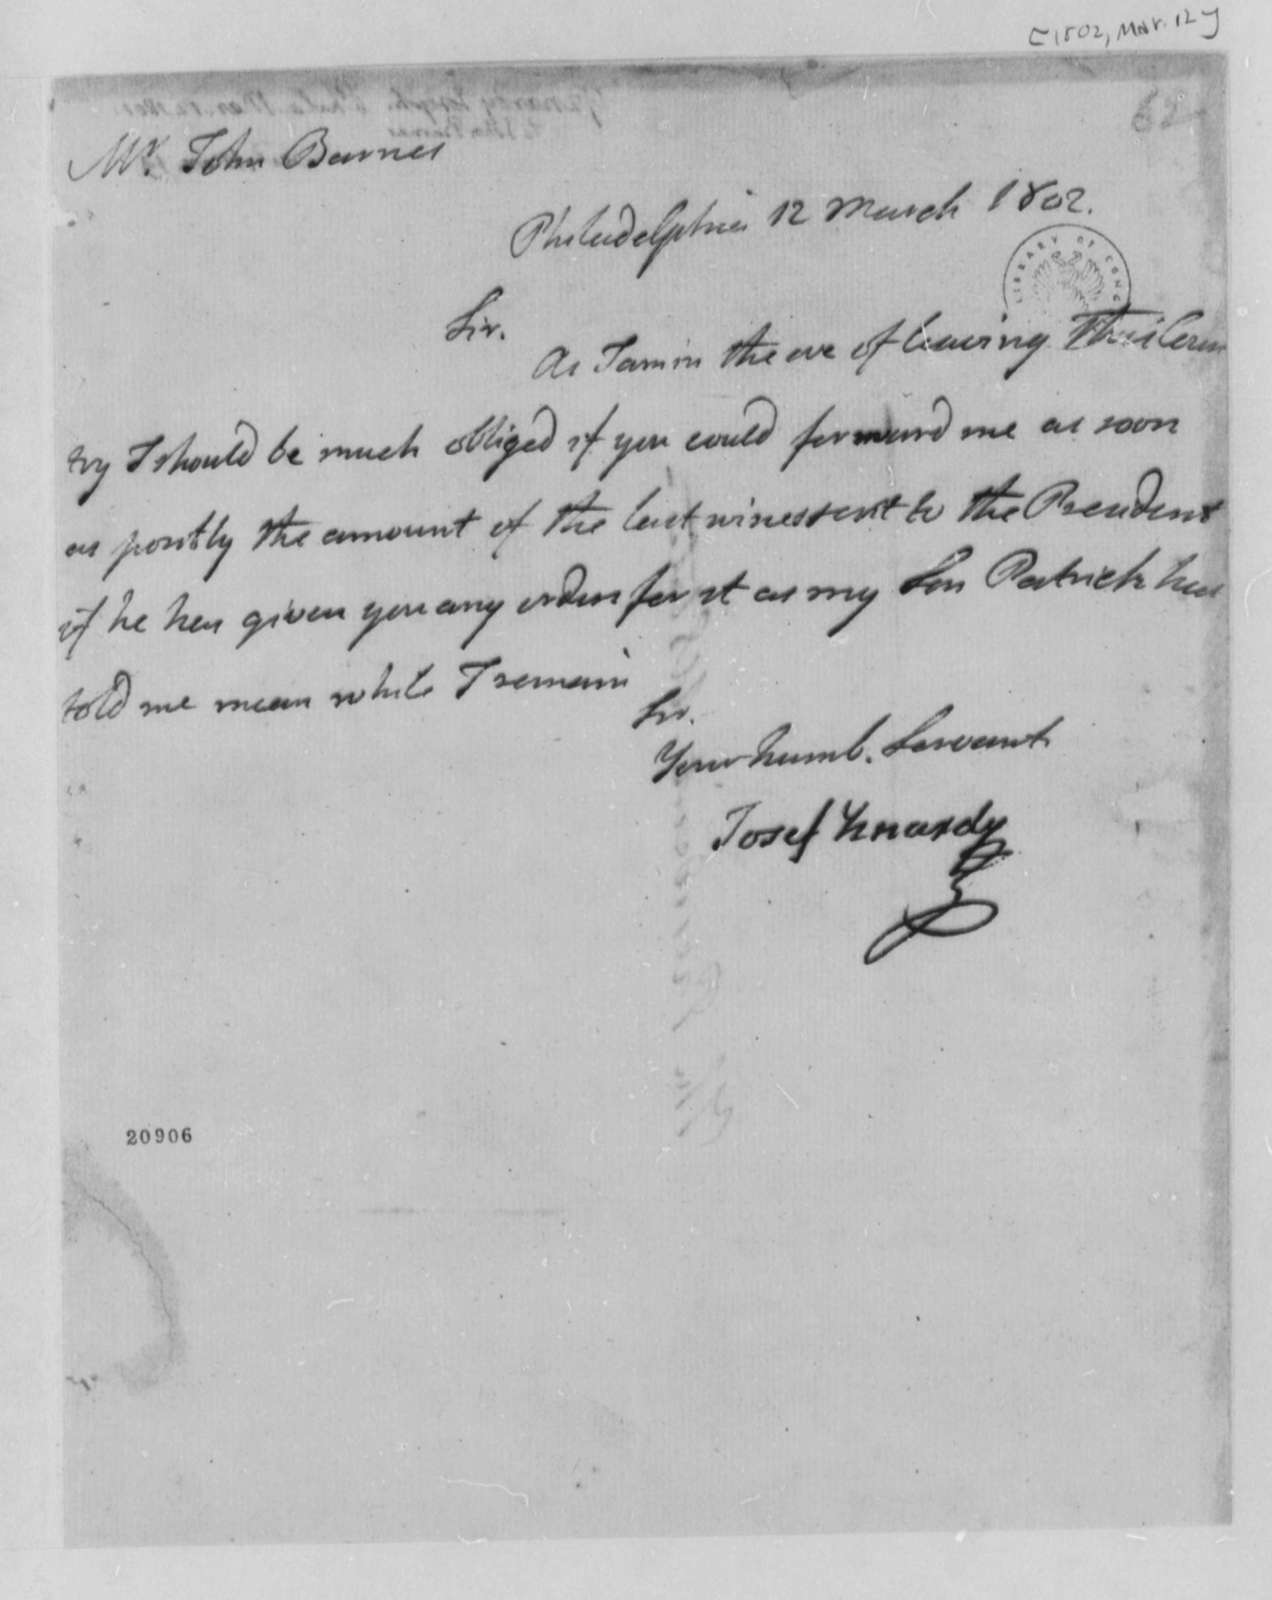 Josef Yznardi to John Barnes, March 12, 1802